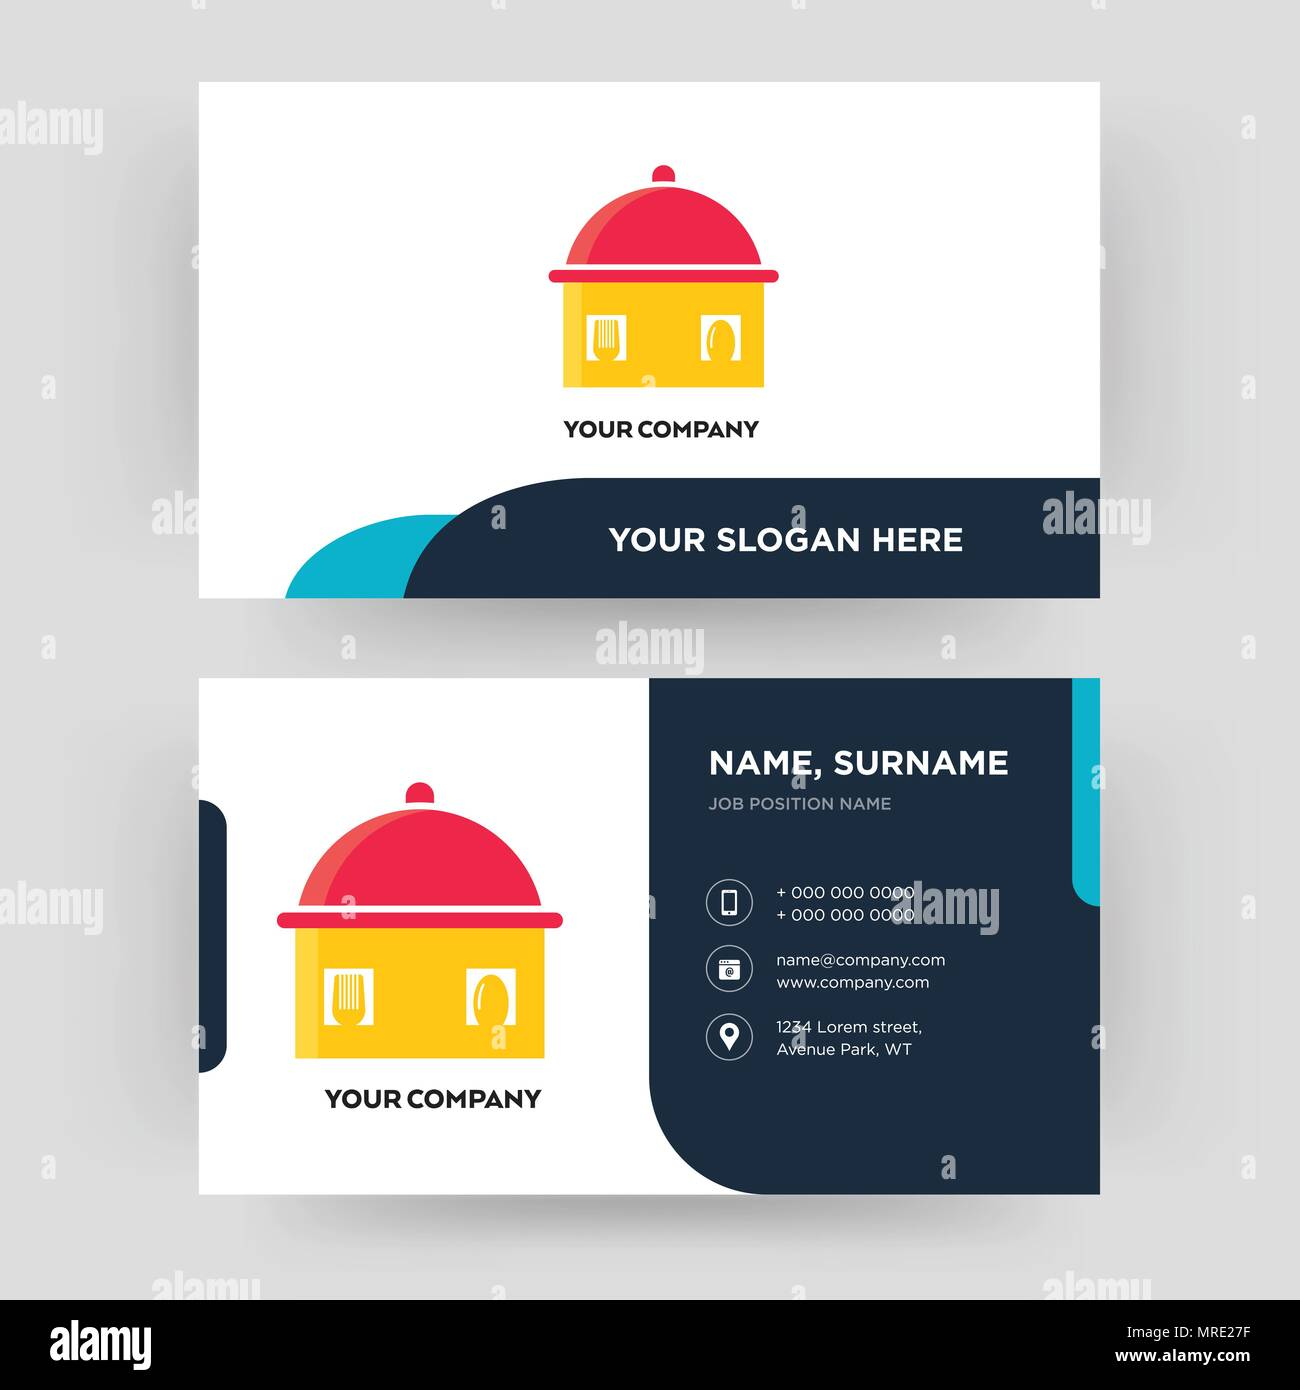 Homemade food business card design template visiting for your homemade food business card design template visiting for your company modern creative and clean identity card vector colourmoves